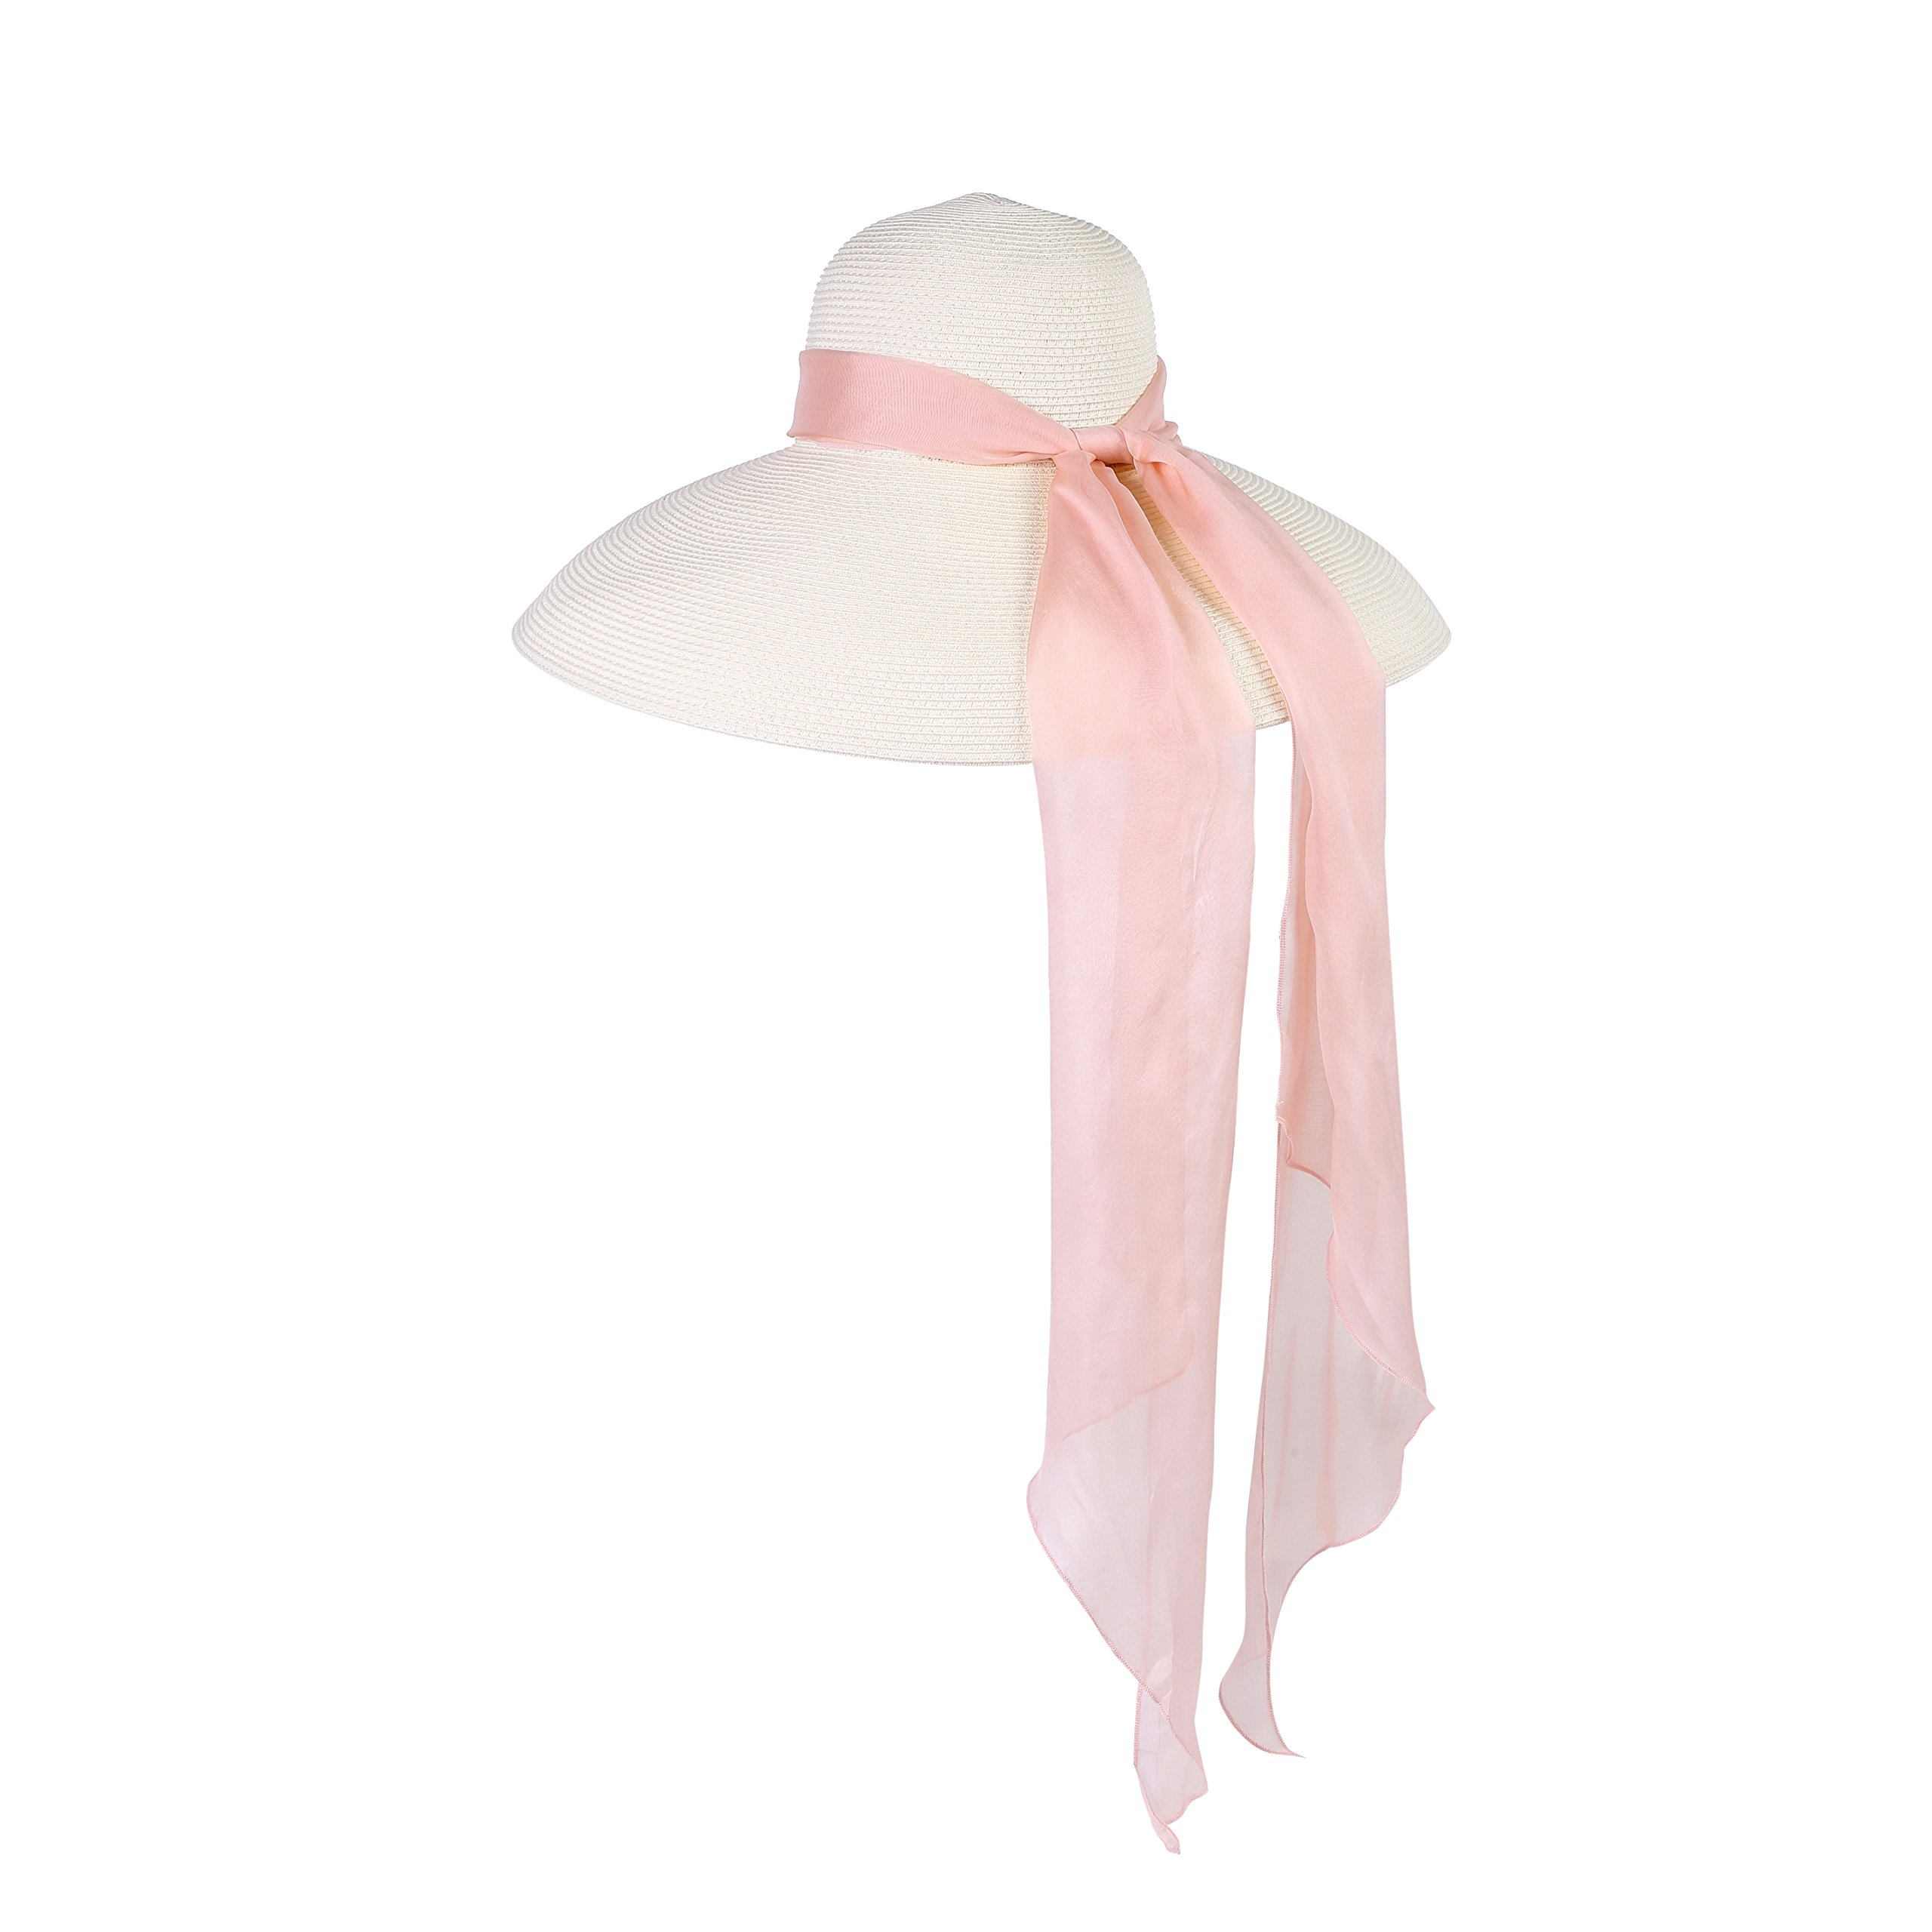 Utopiat Audrey Hepburn Oversized Holiday Travel Beach Straw Hat With Silk Chiffon Scarf In Muted Rose